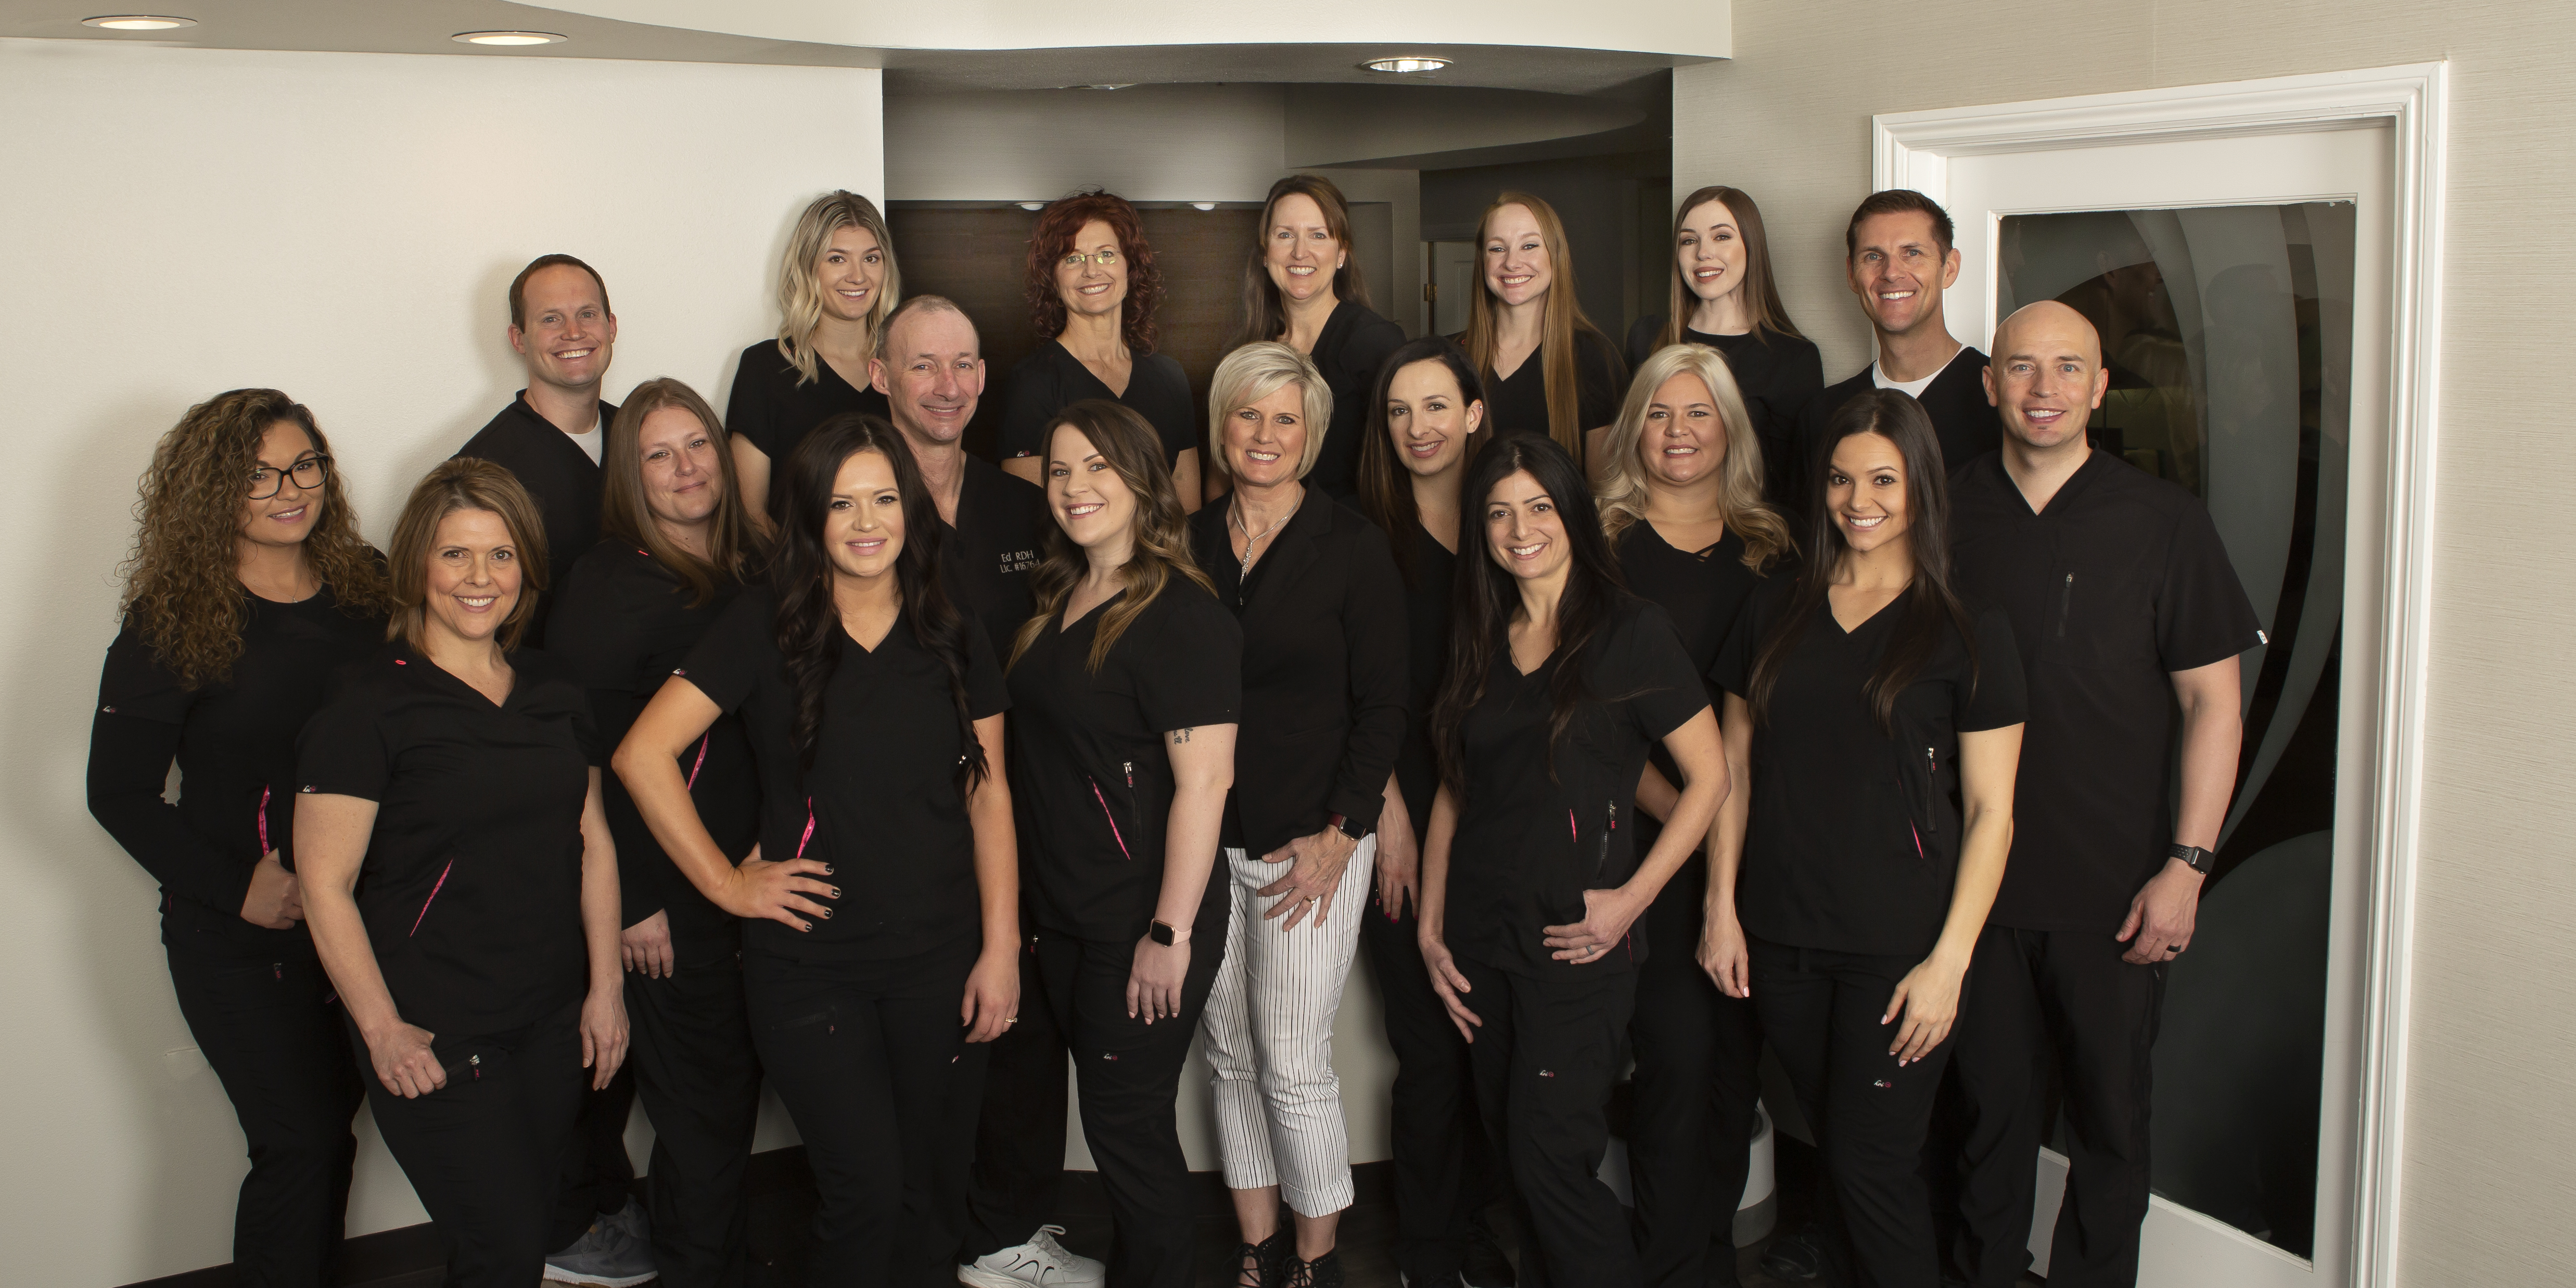 The Dental Staff at Hammond & Proctor Family Dentistry